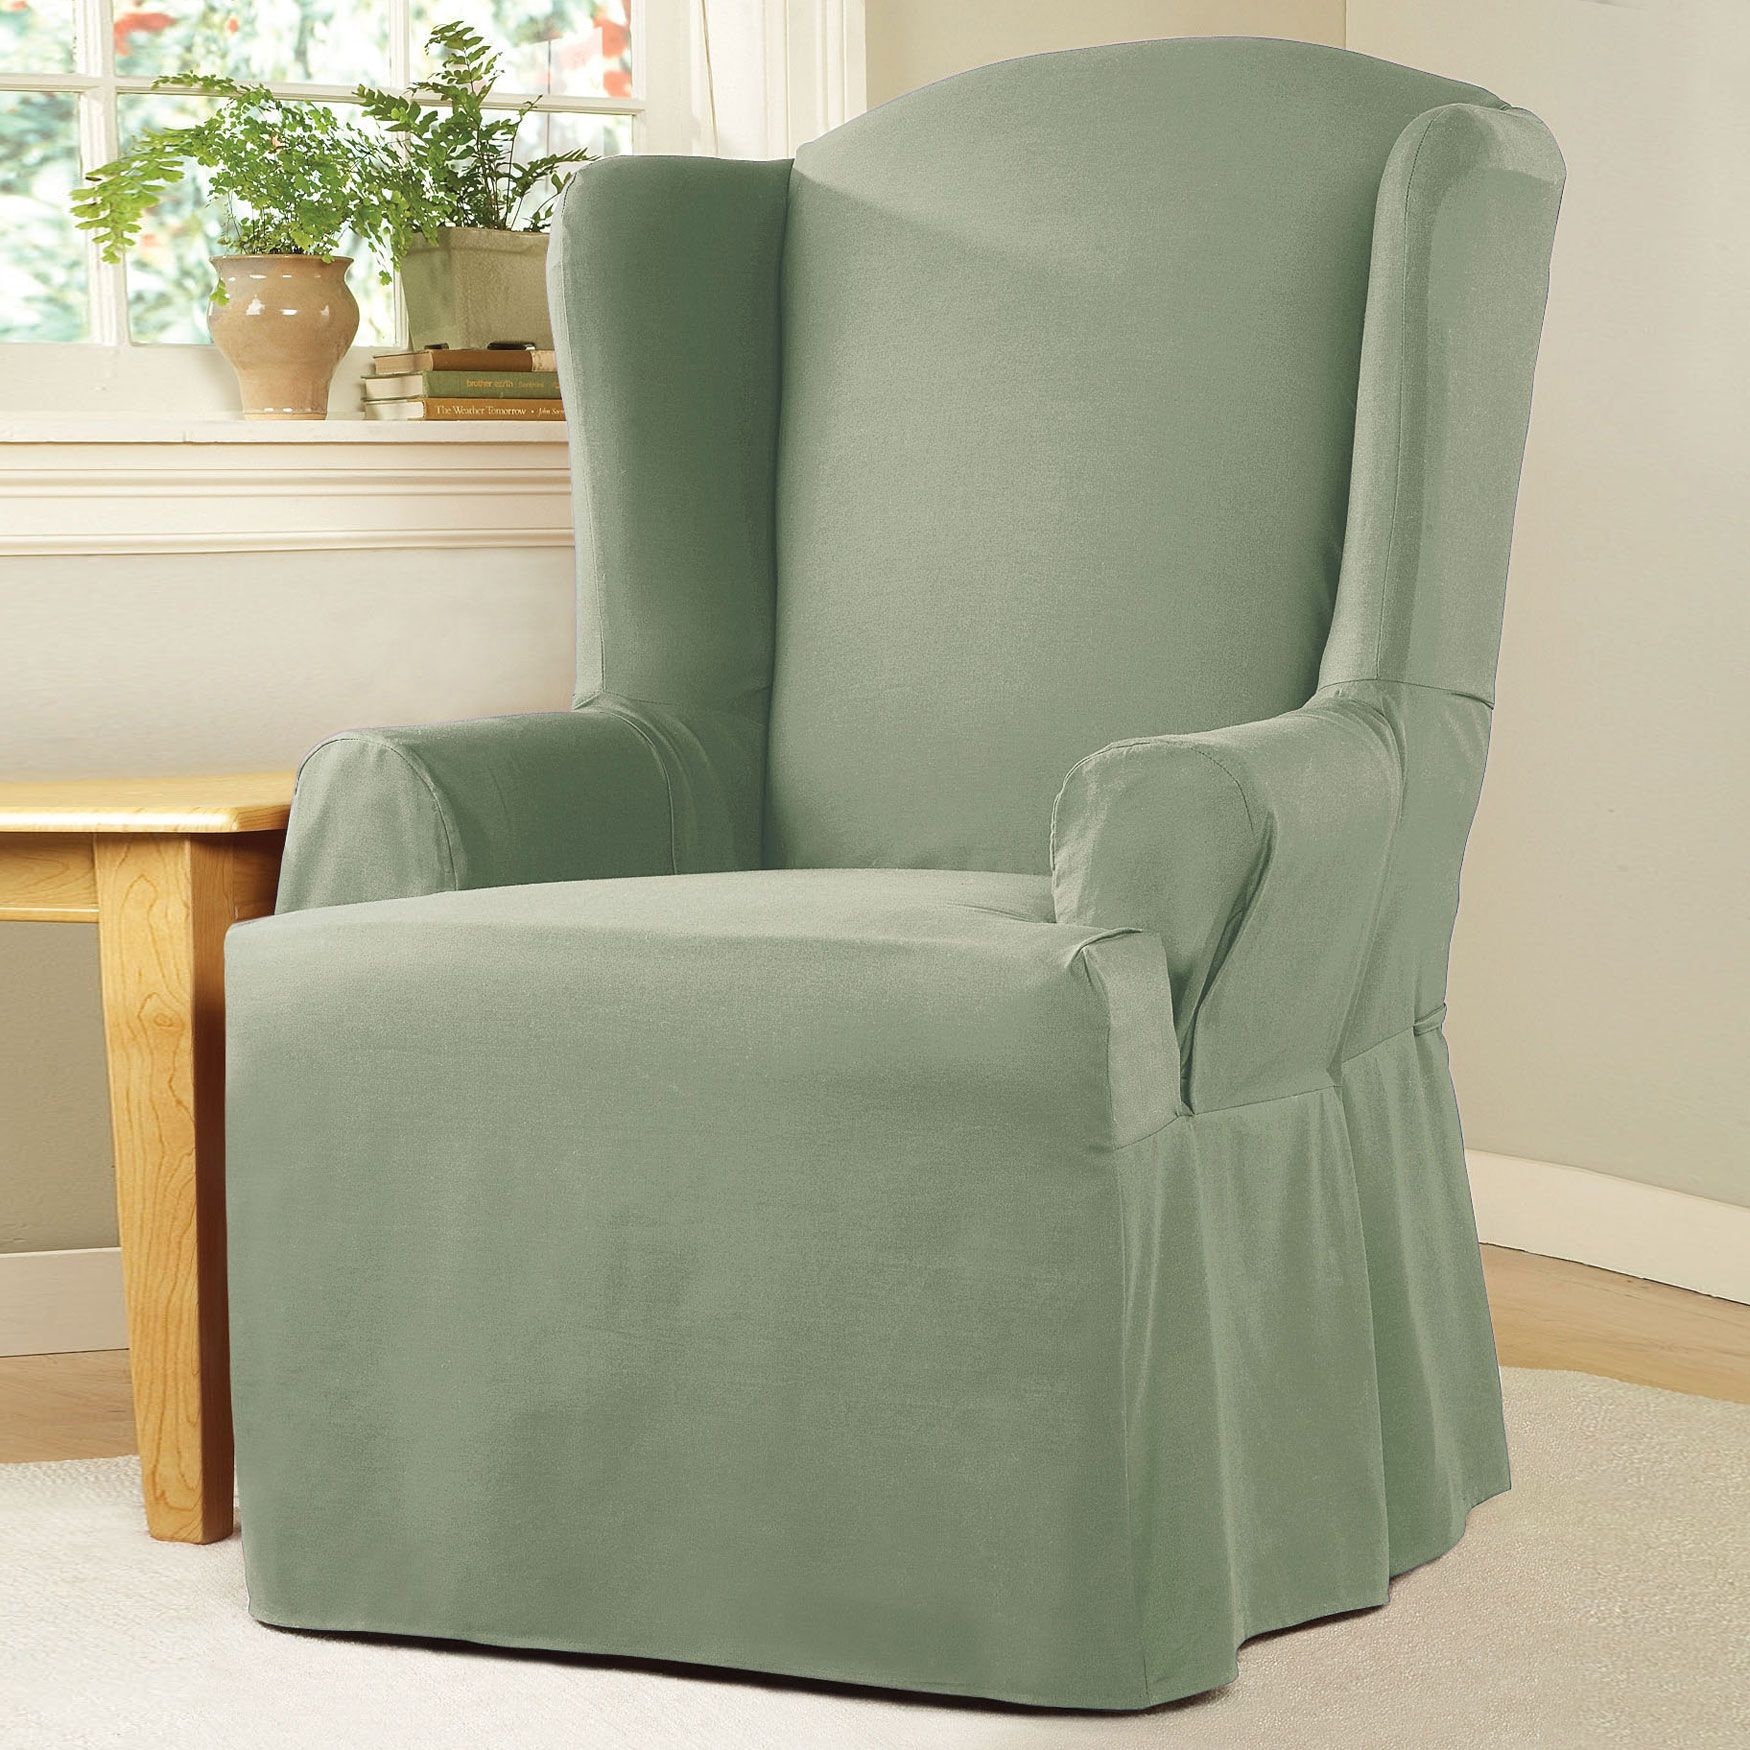 Brylanehome Chair Covers Chicco High Cotton Duck Wing Slipcover Fits Up To 42 39 Back